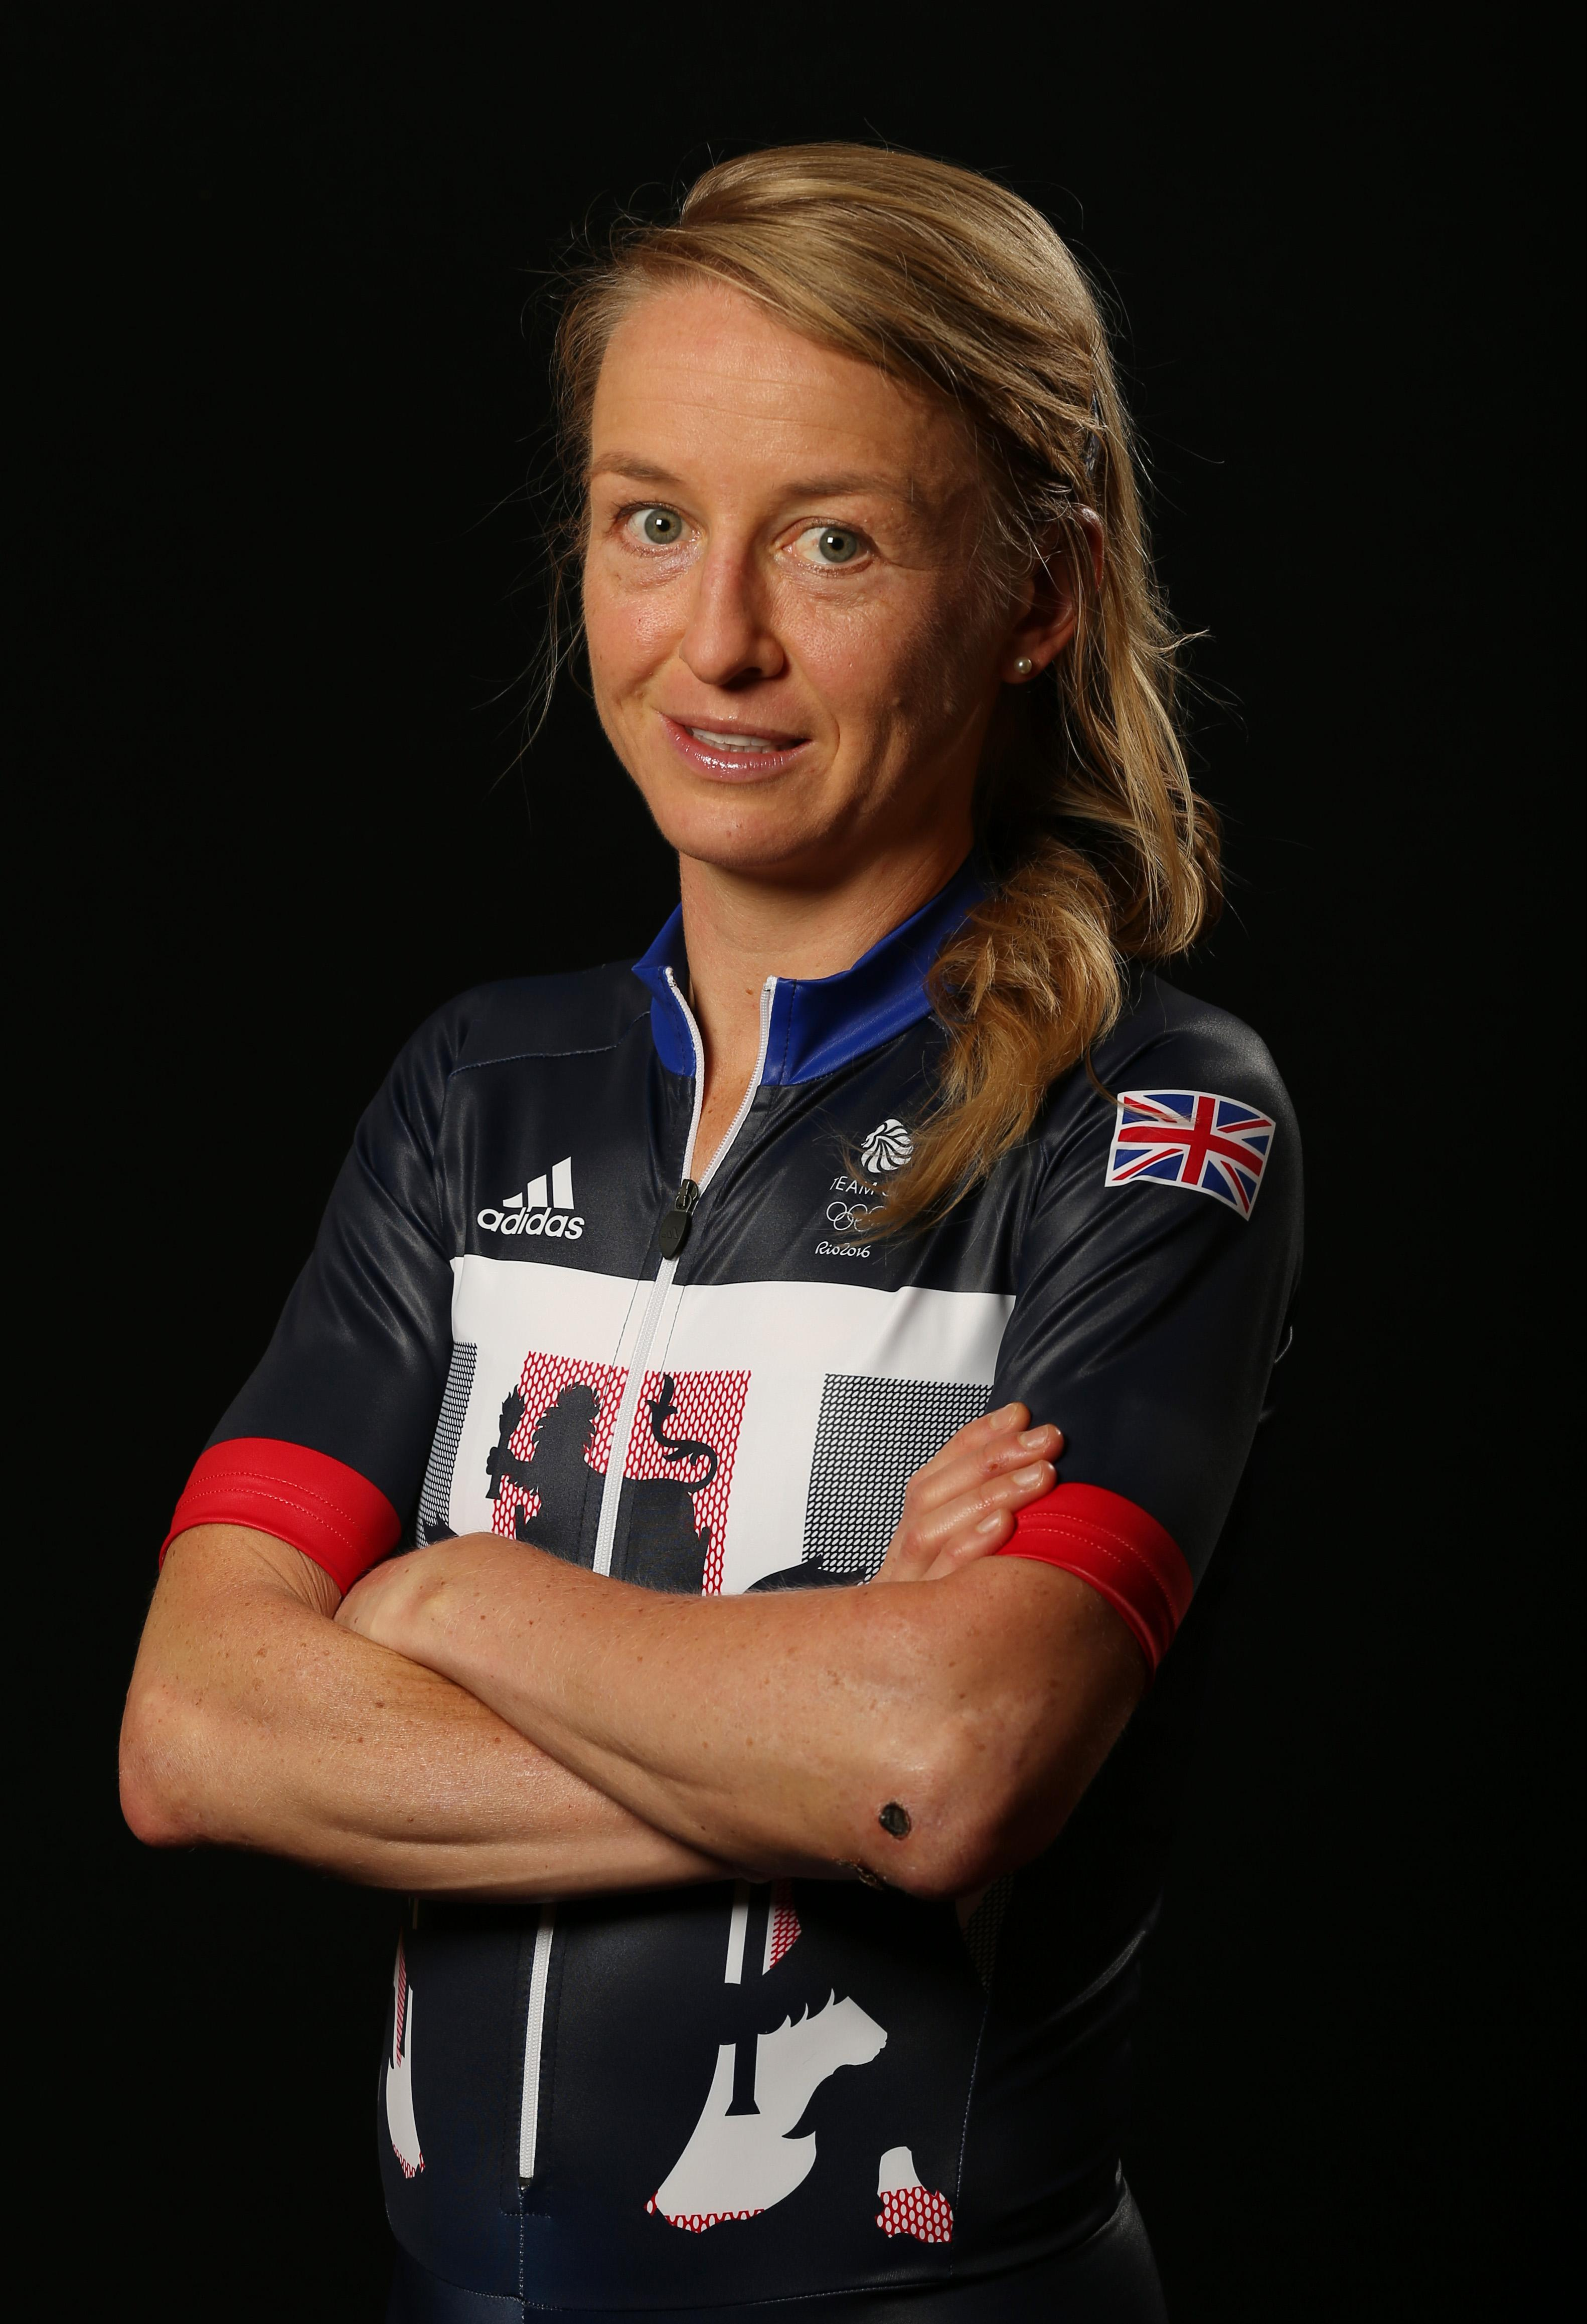 Team Sky claimed the medication in the jiffy bag delivered to France had been ordered for Emma Pooley - even though she was in Spain